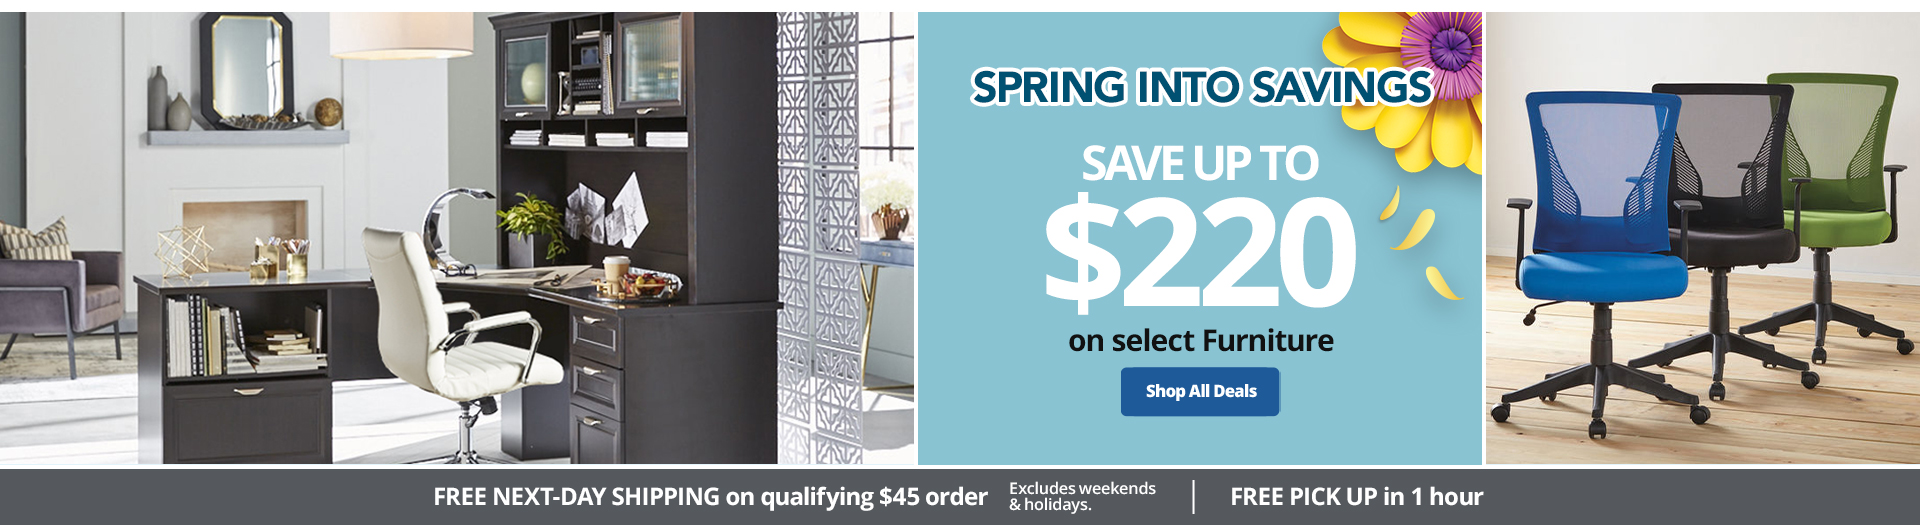 Slam Dunk Savings! | Save up to $220 on select Furniture